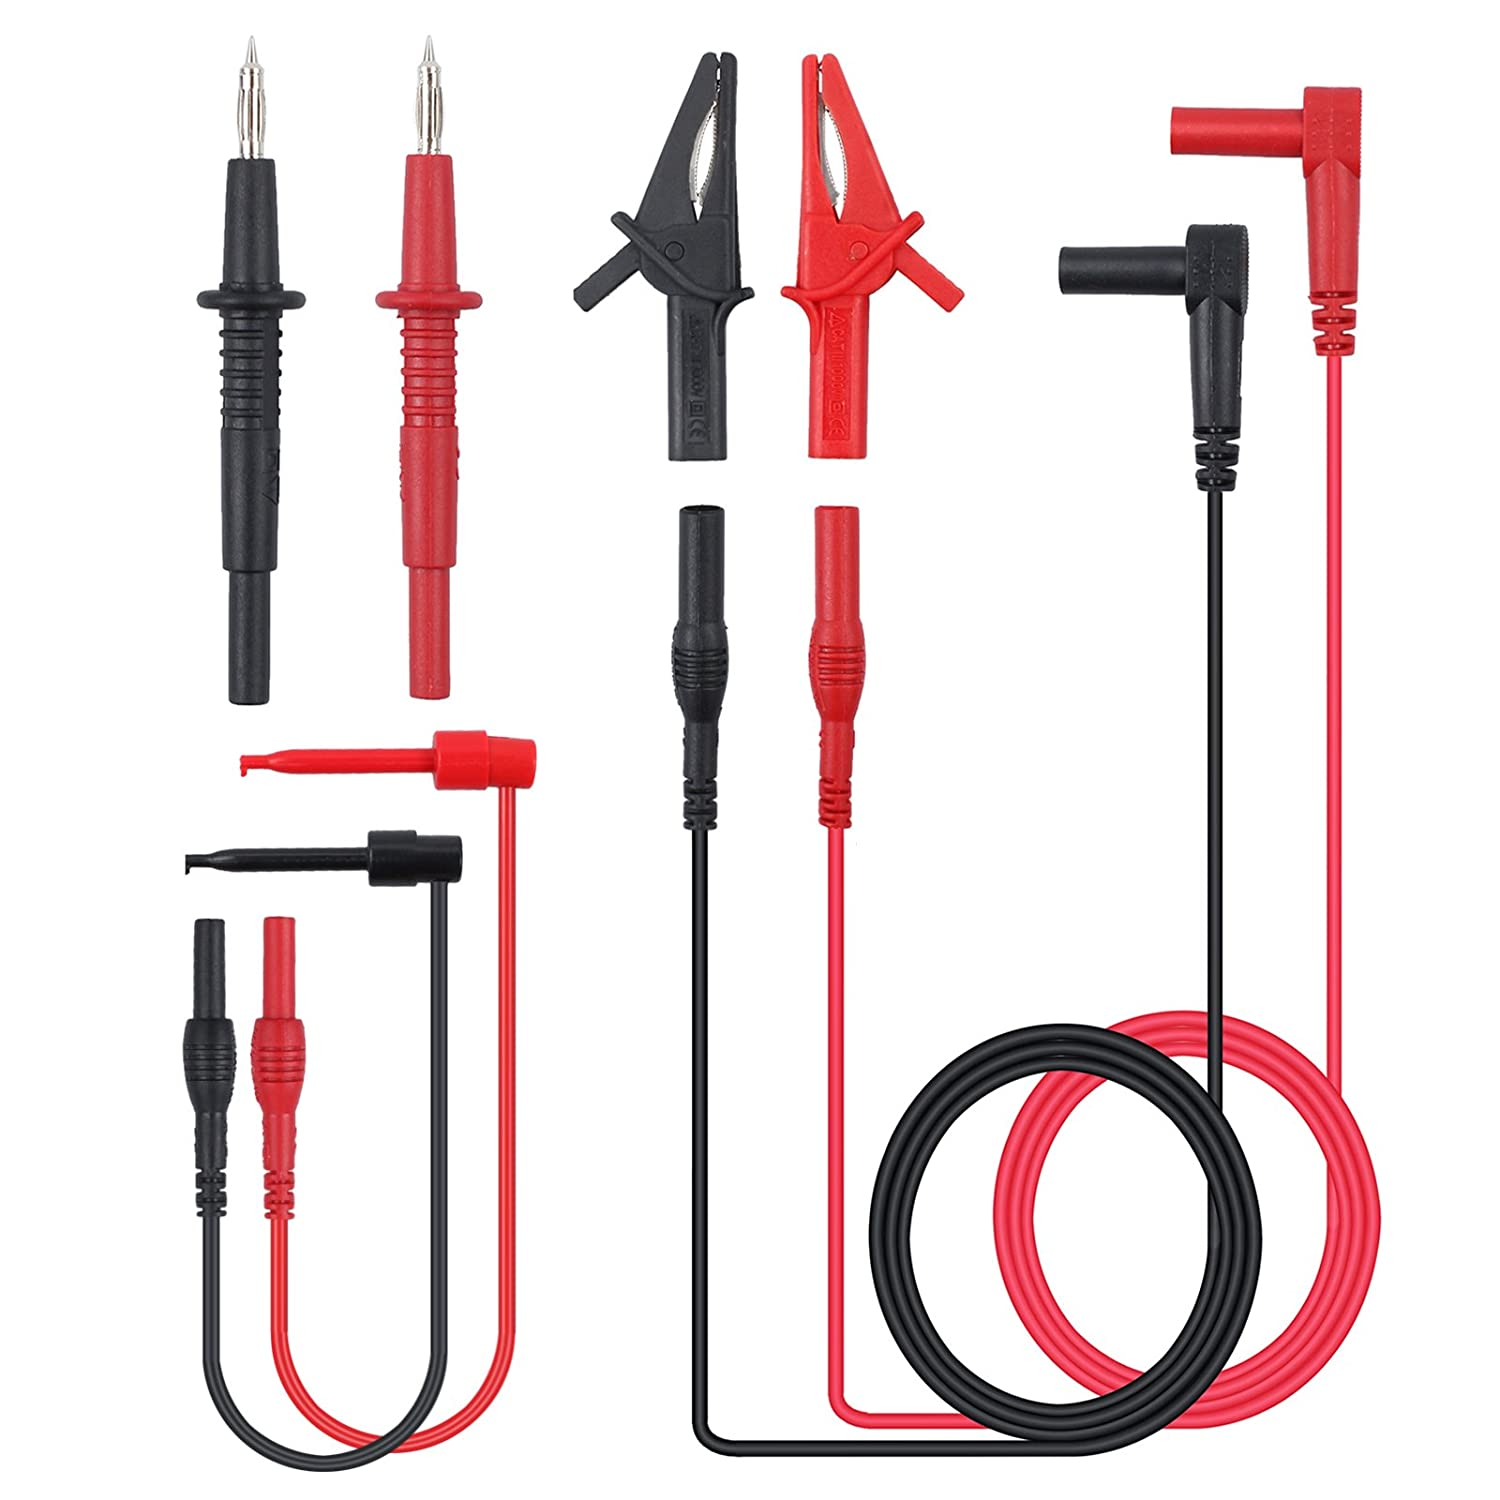 Justech 8-Pieces Multimeter Test Lead Kit Professional Electronic Test Lead Accessory Kit Includes Lead Extensions Test Probes Mini Hooks Alligator Clips for School Laboratory Factory and other Social Fields